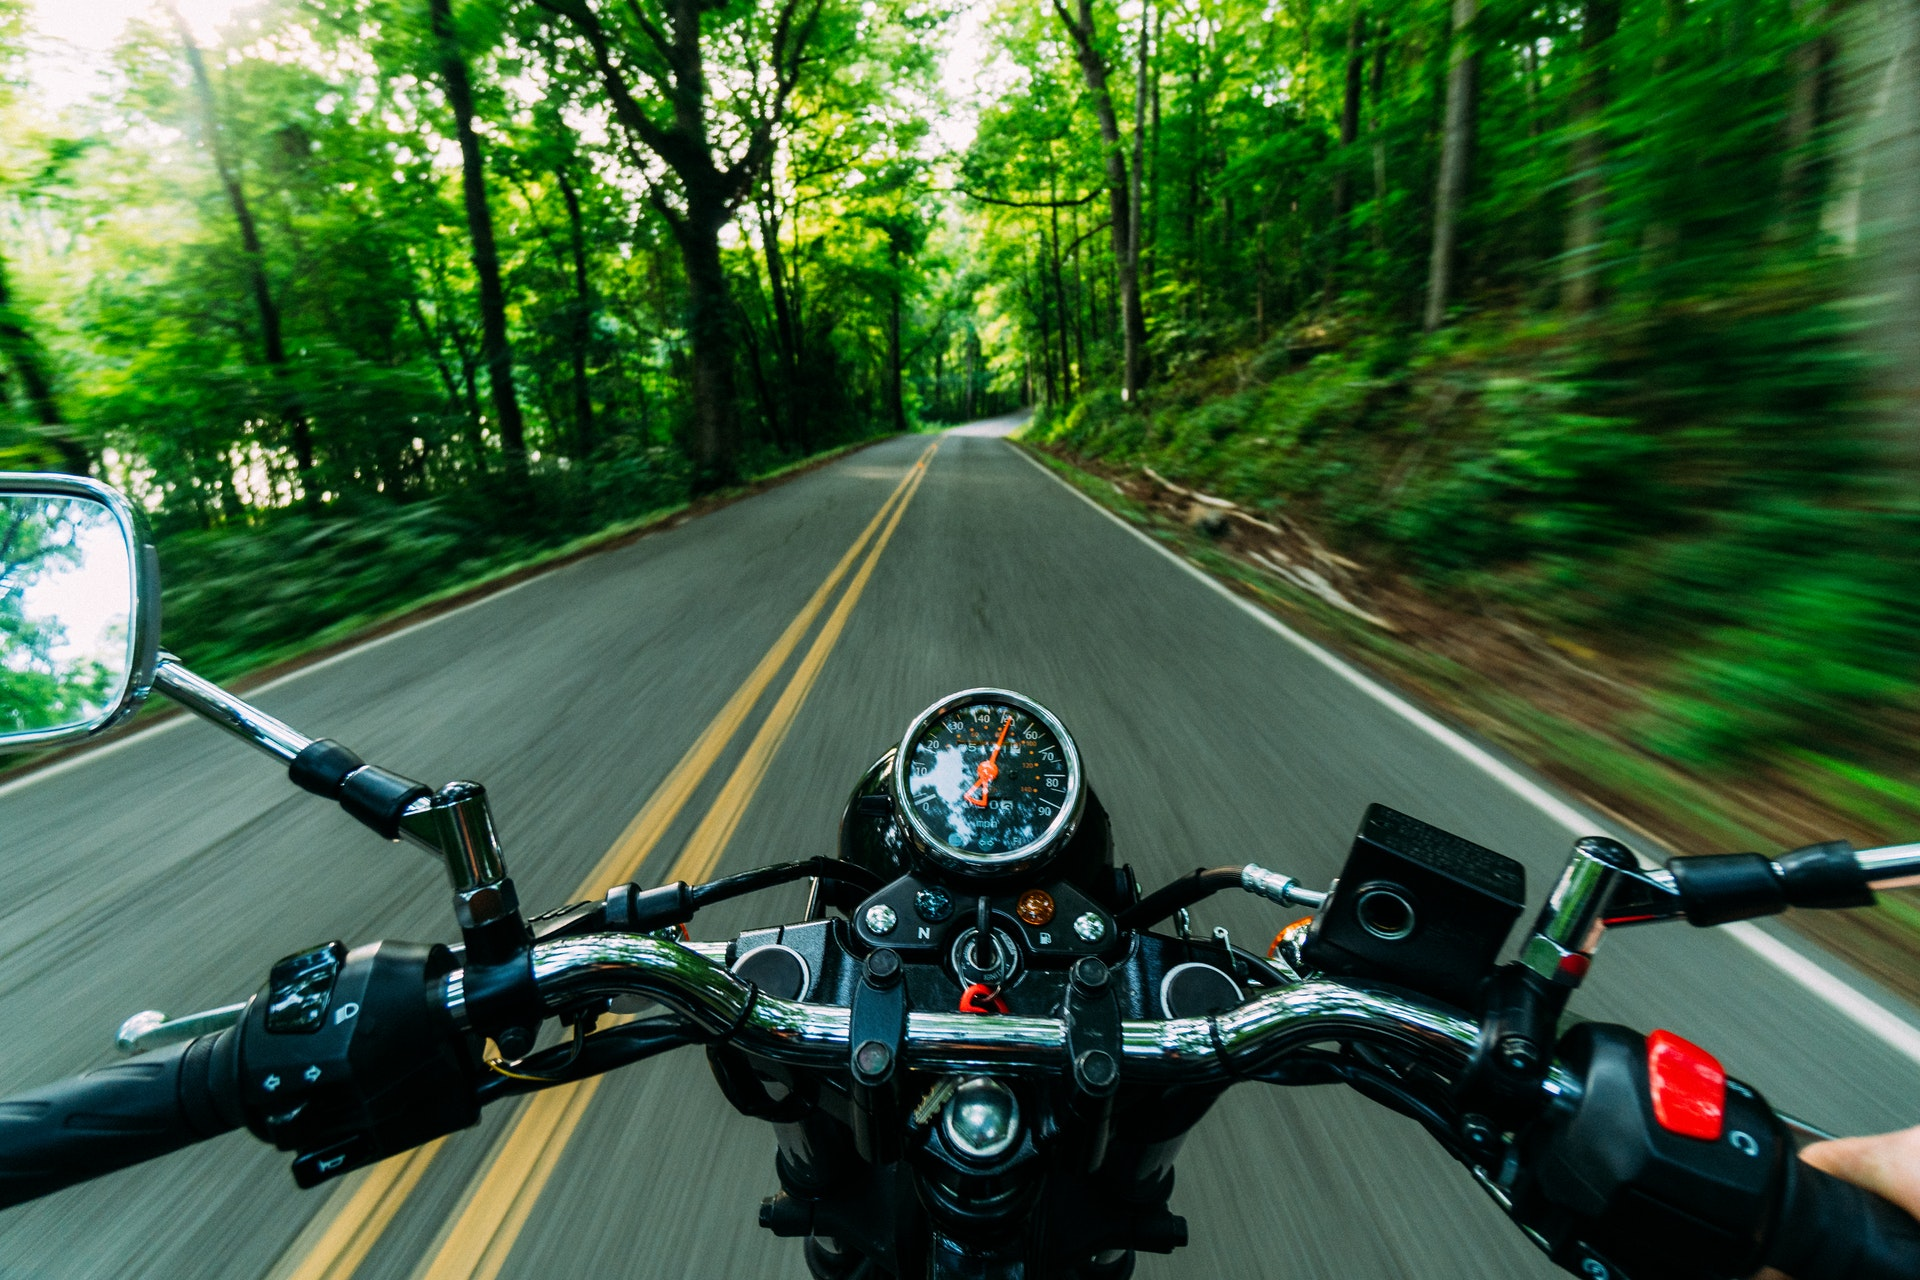 What steps can you take after being involved in a motorcycle accident